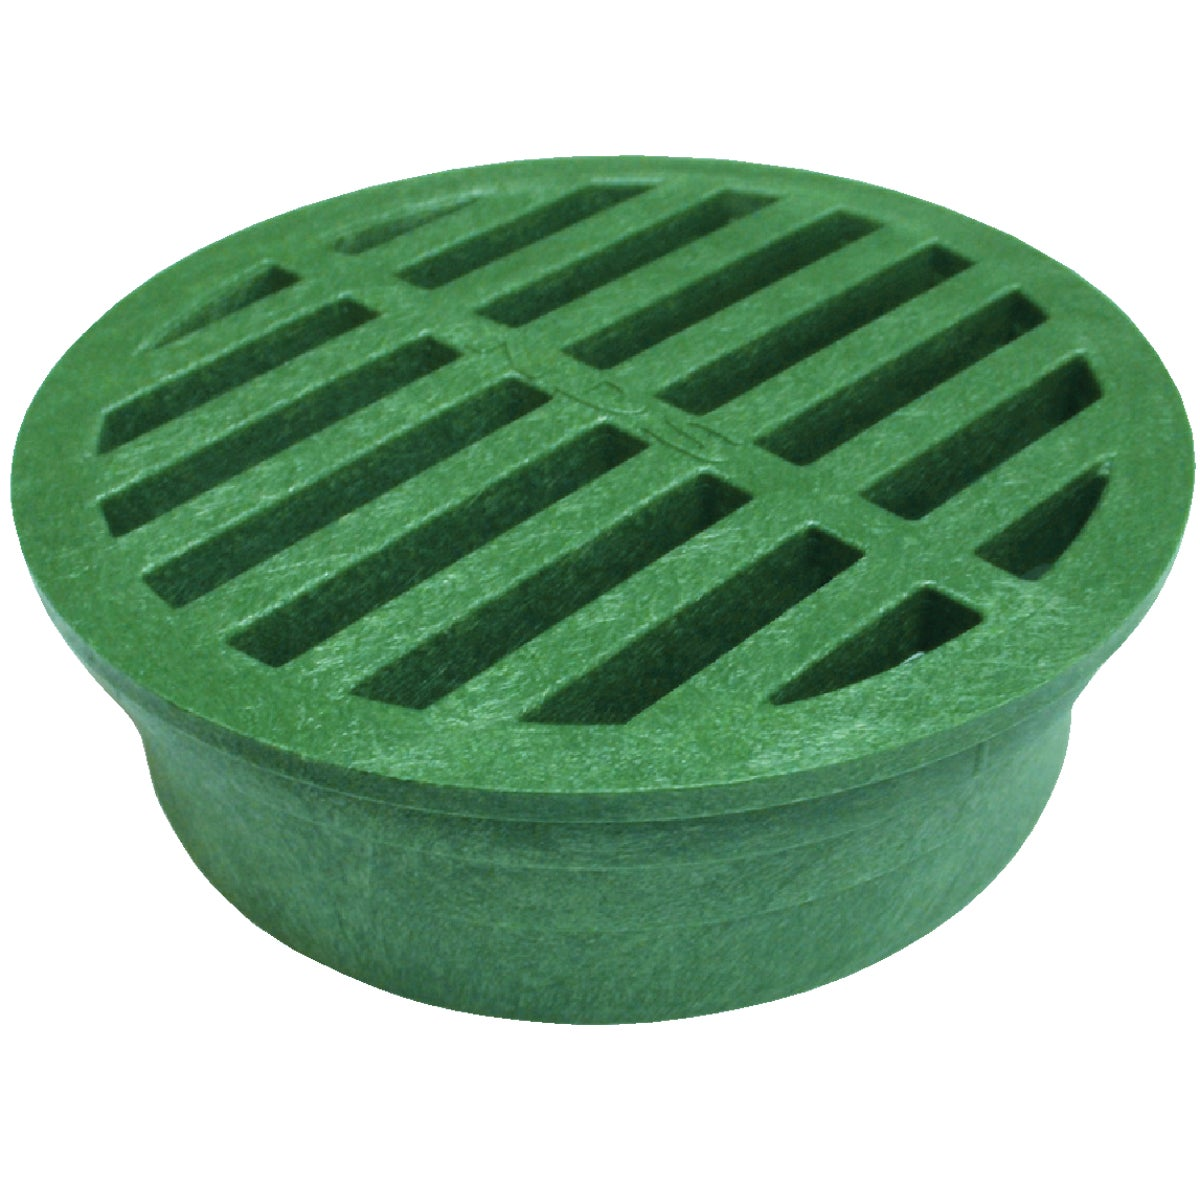 "4"" GREEN ROUND GRATE - 13 by National Diversified"